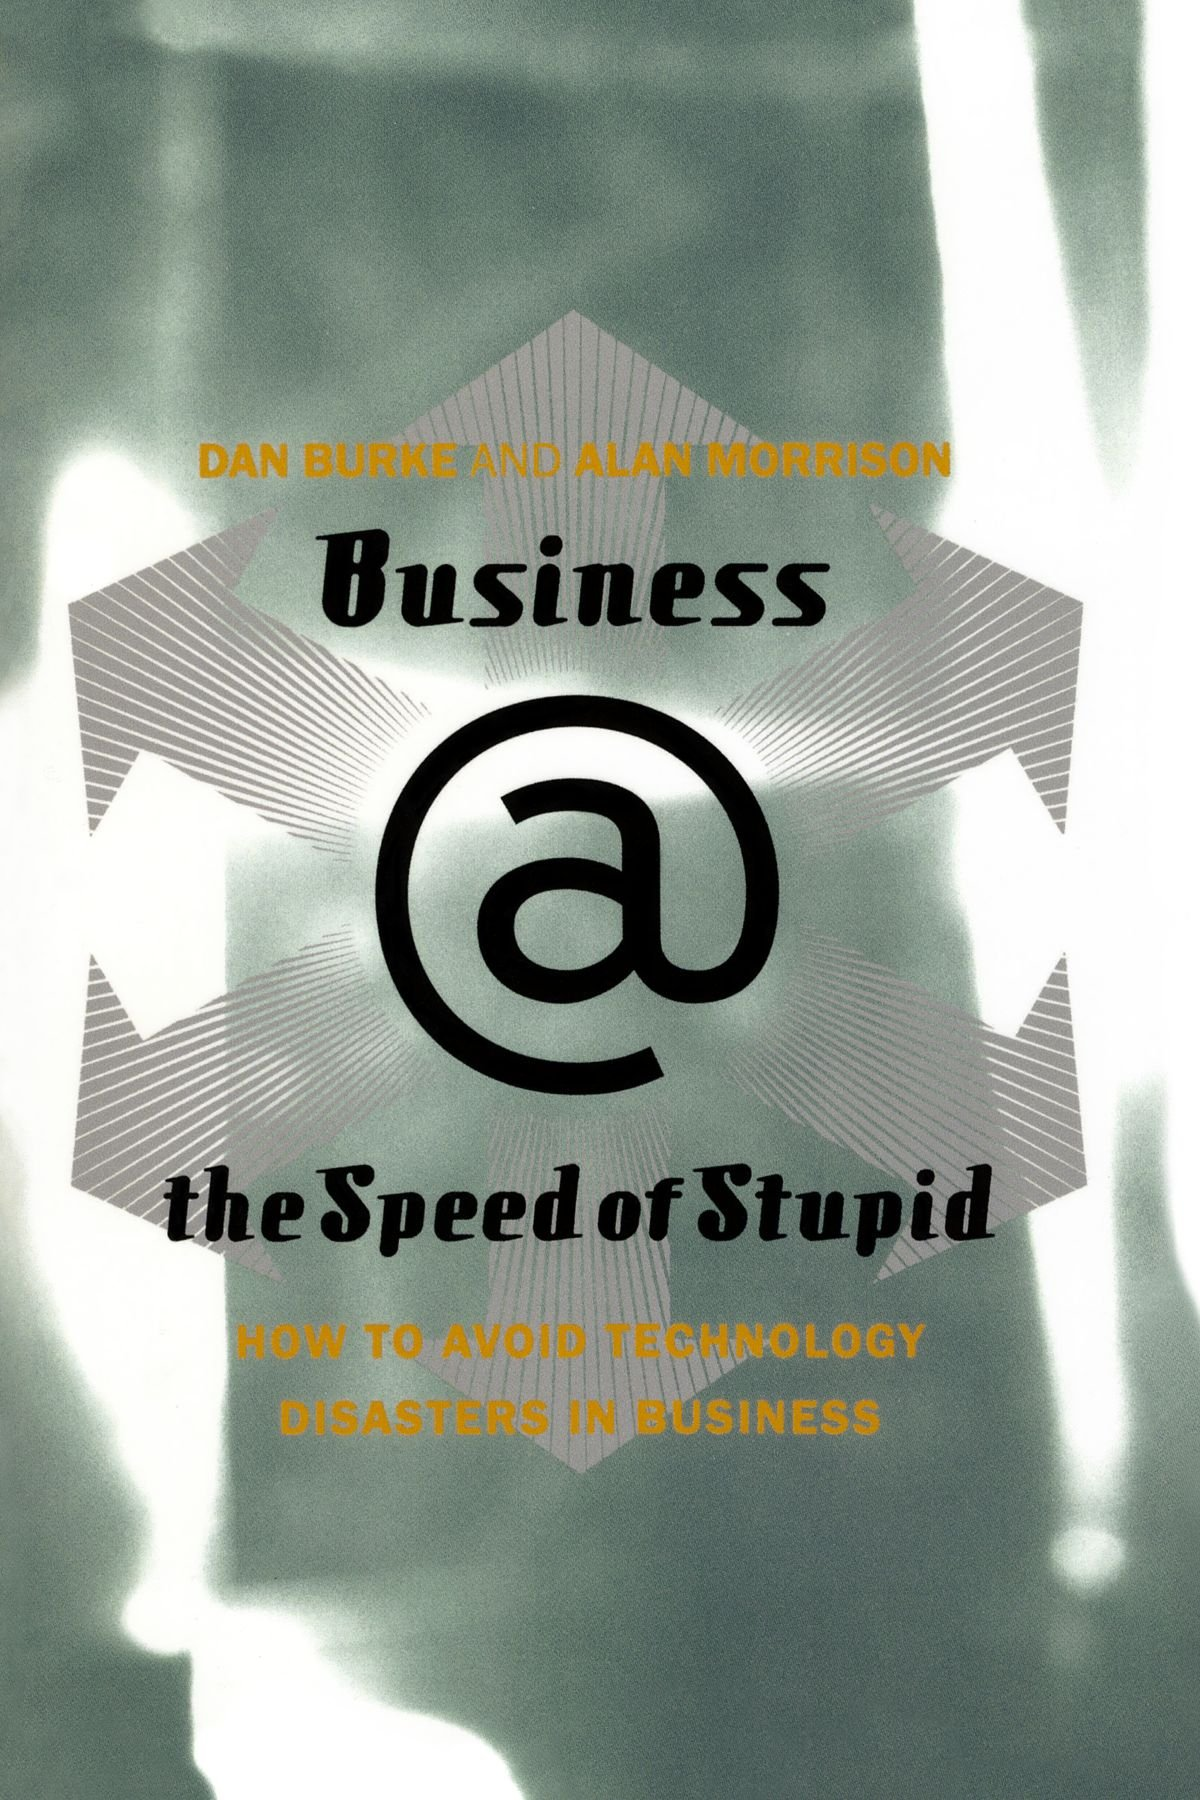 Business @ the Speed of Stupid: How to Avoid Technology Disasters in Business pdf